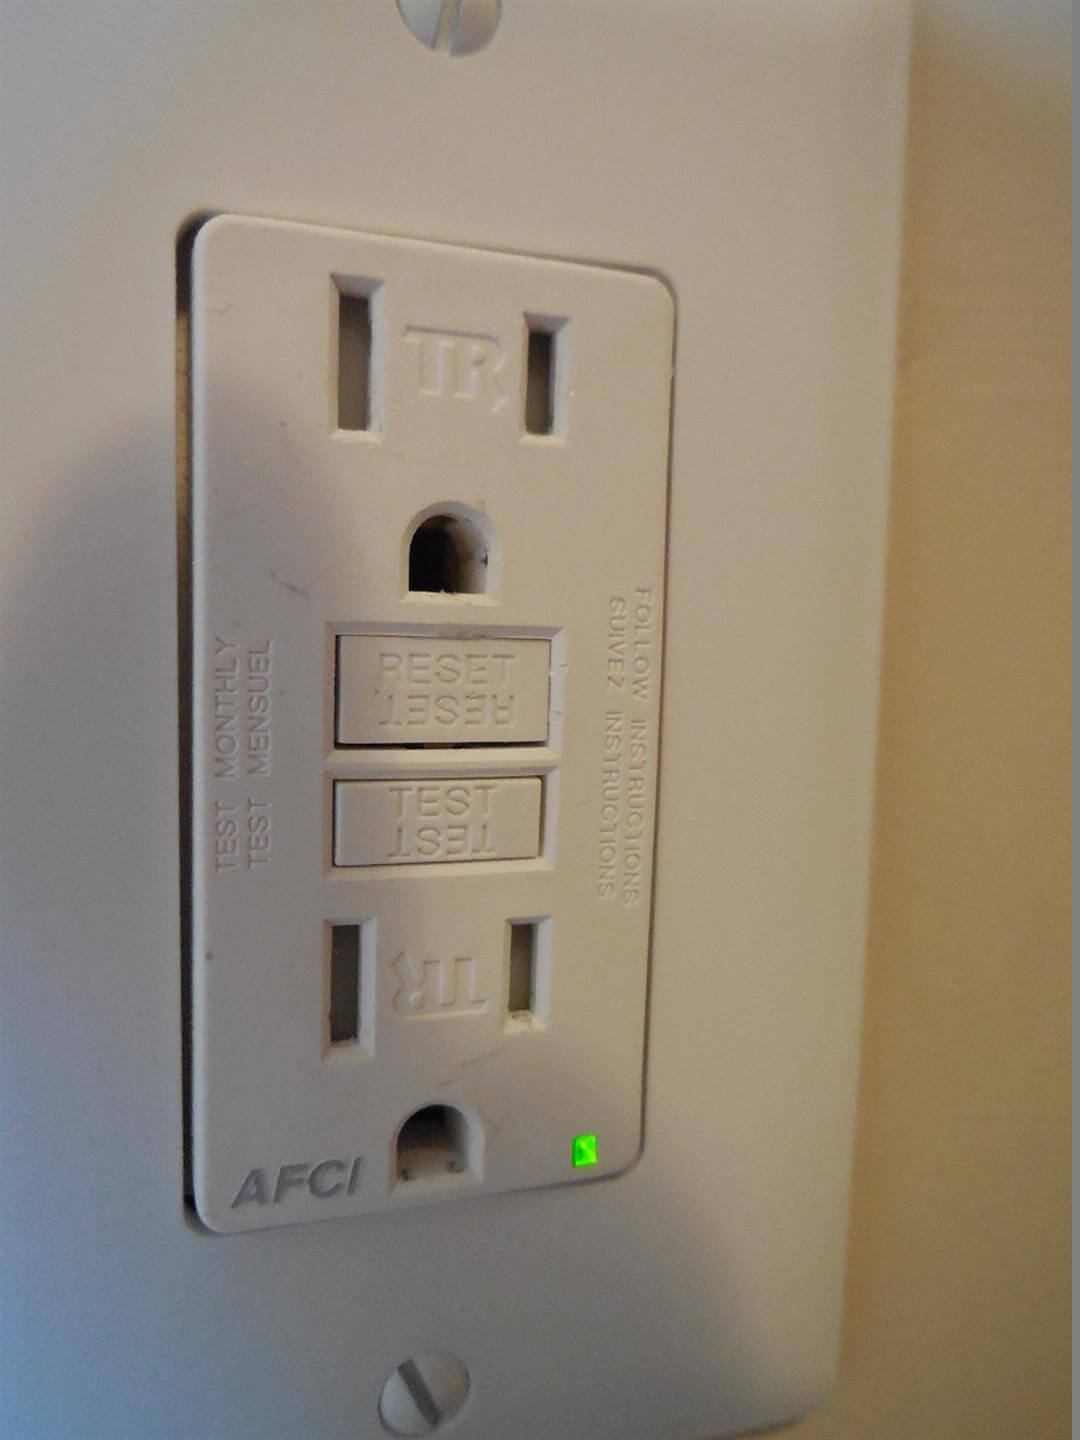 hight resolution of new electrical safety requirement afci protection for replacement outlets